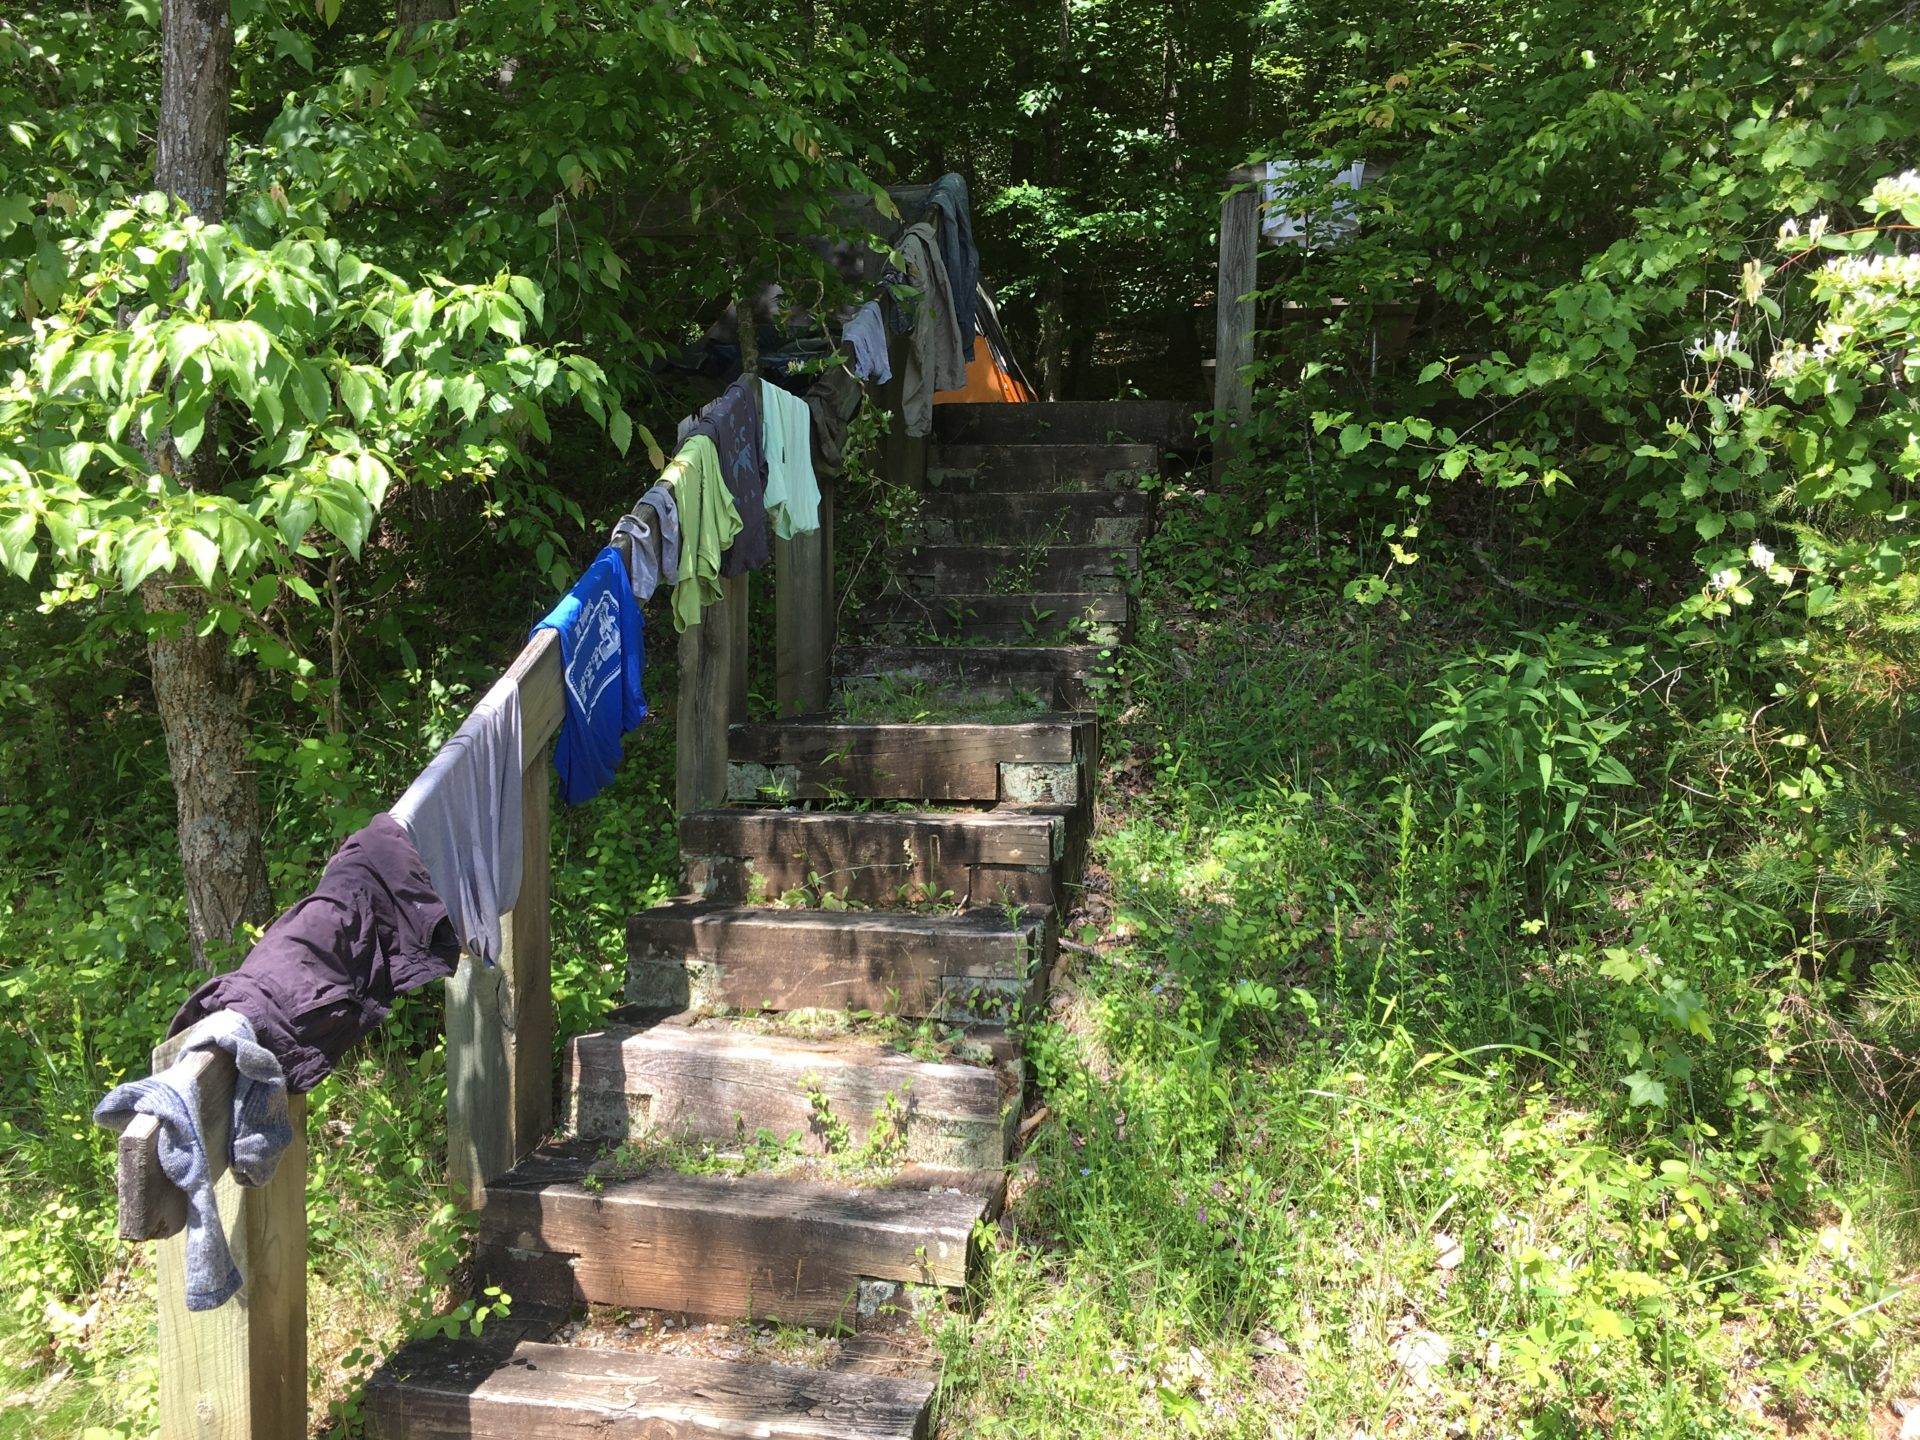 clothes hanging on a stairway railing in the woods